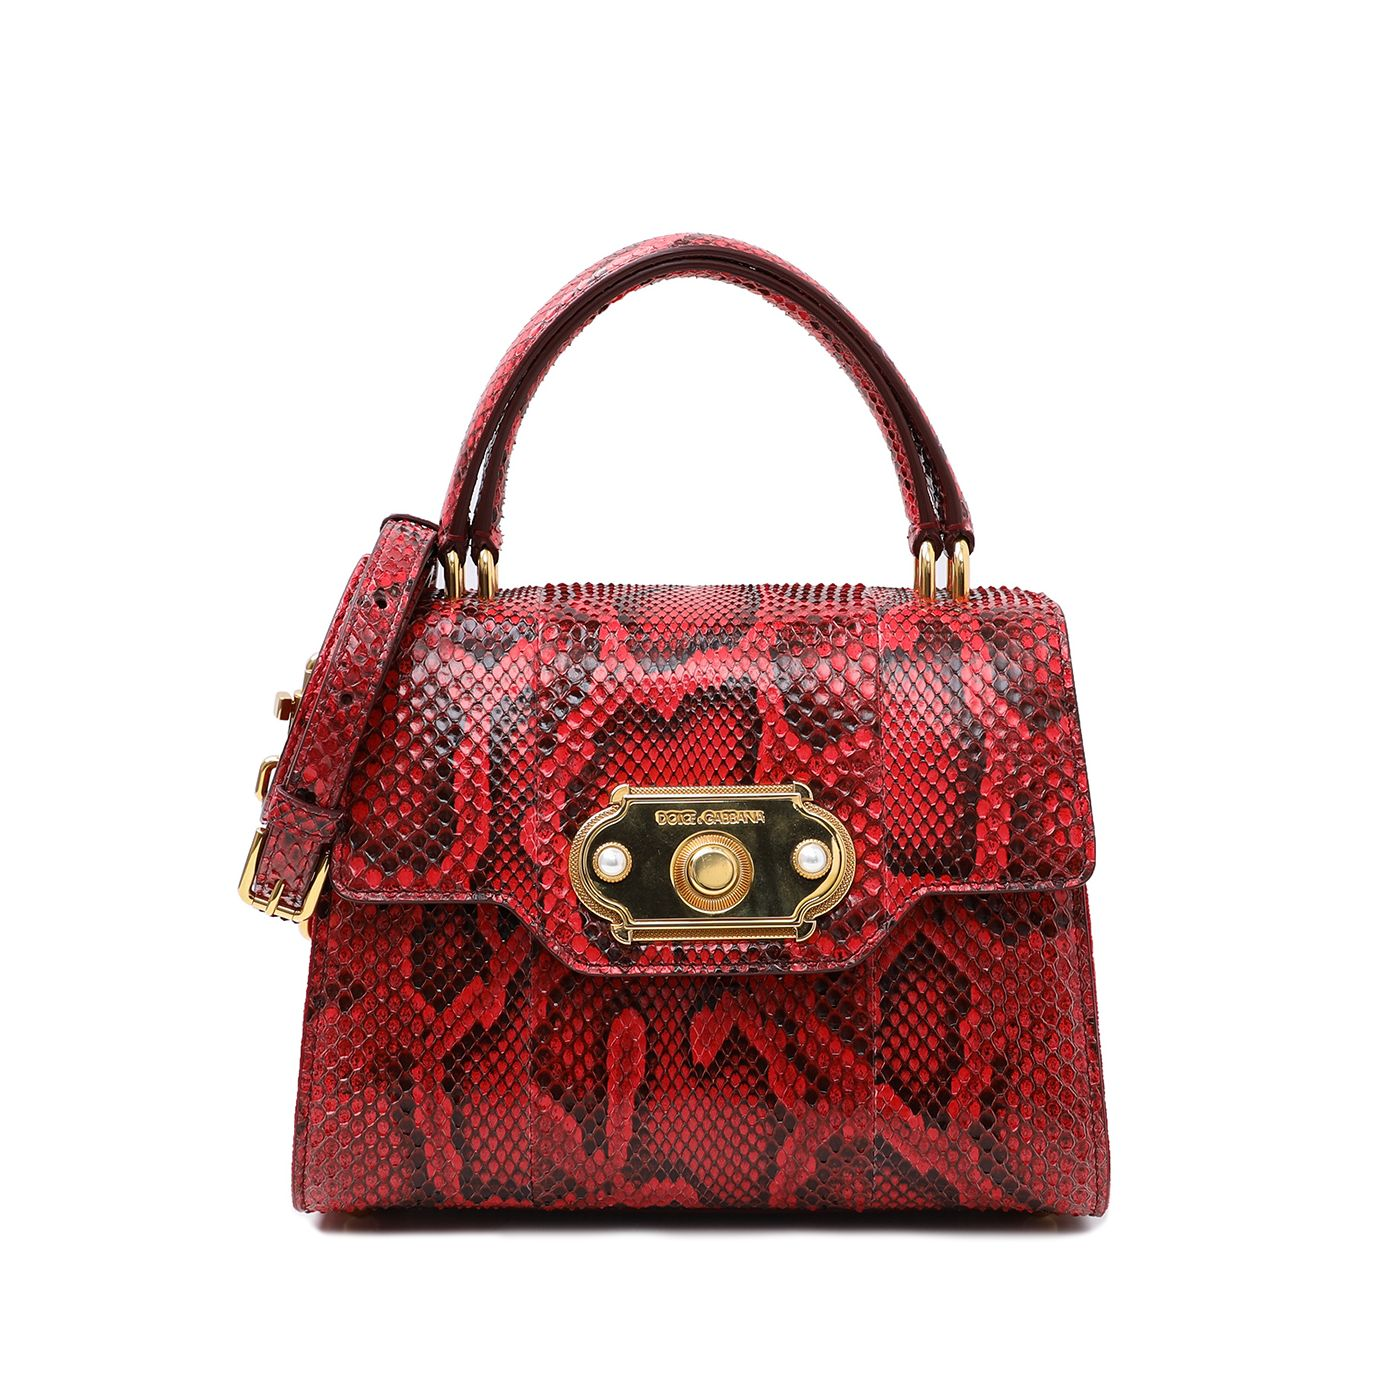 Dolce & Gabbana Red Python Welcome Top Handle